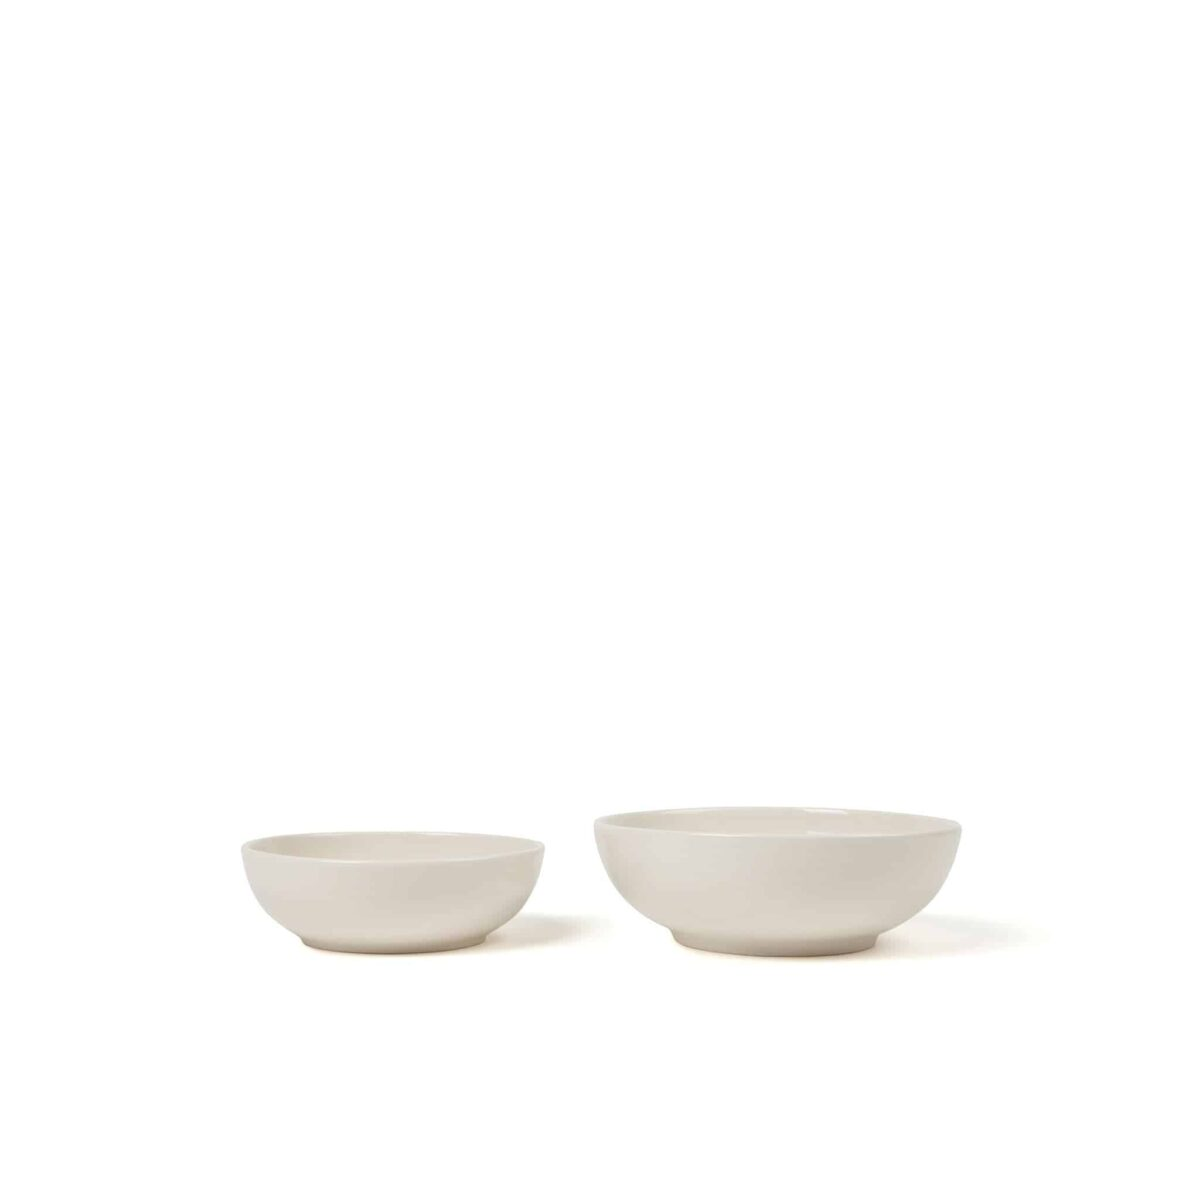 Another-country-pottery-little-bowl-natural-002